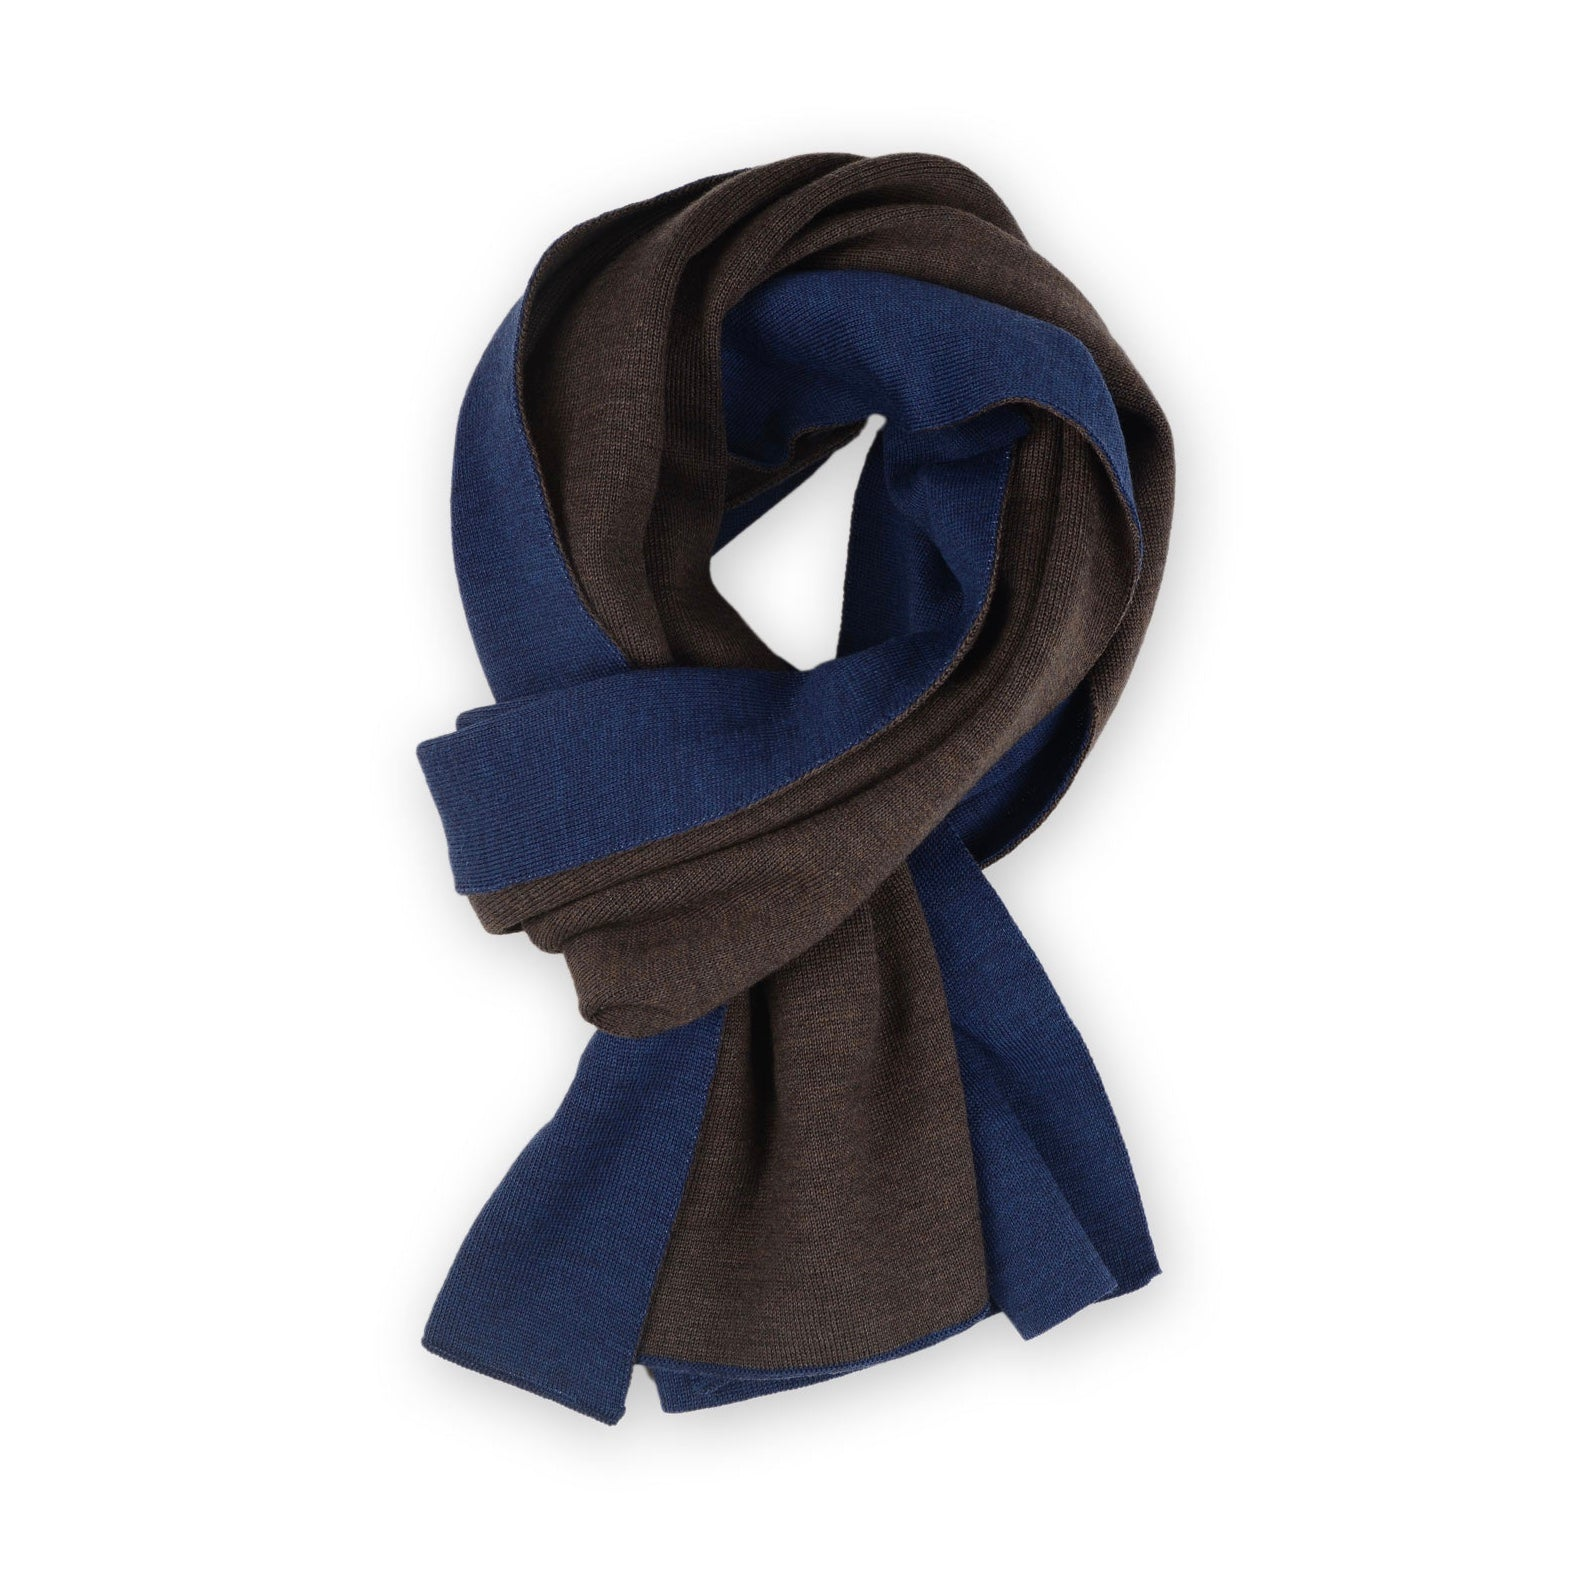 Scarf double face 50x180cm, blue / brown